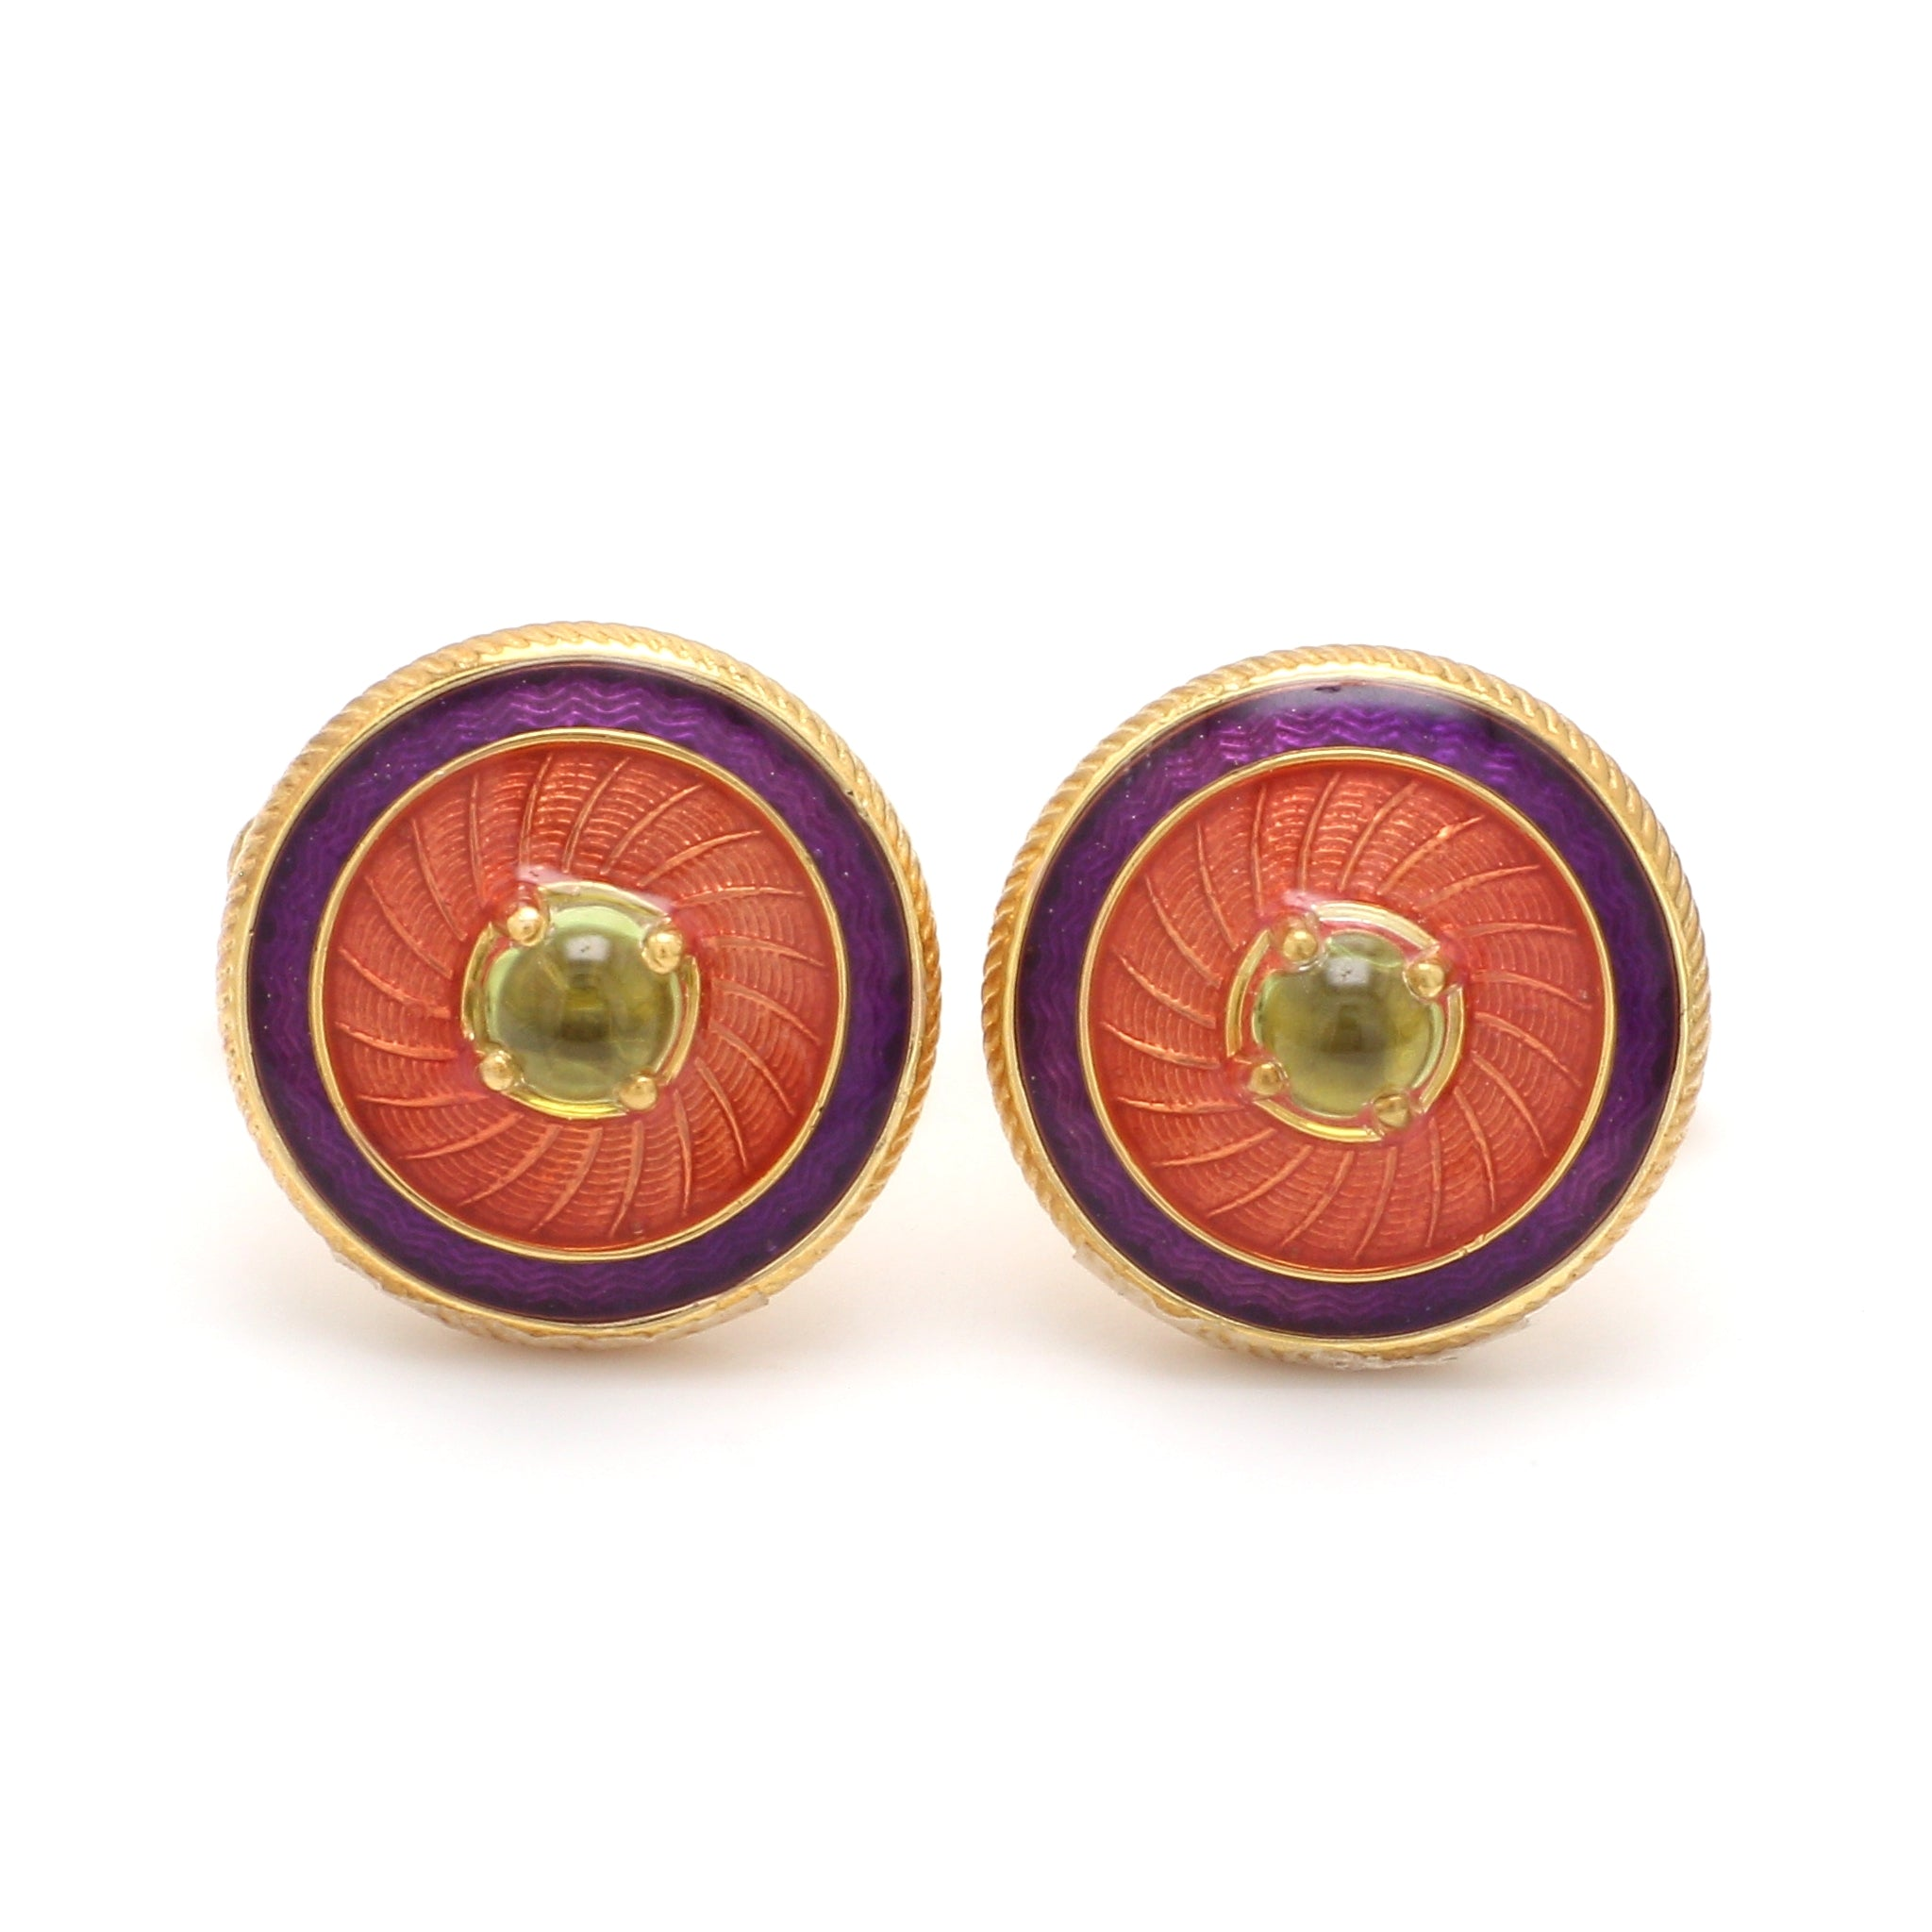 Front View of 925 Silver Cufflinks for Men with Yellow, Purple & Red Enamel JL AGC 31